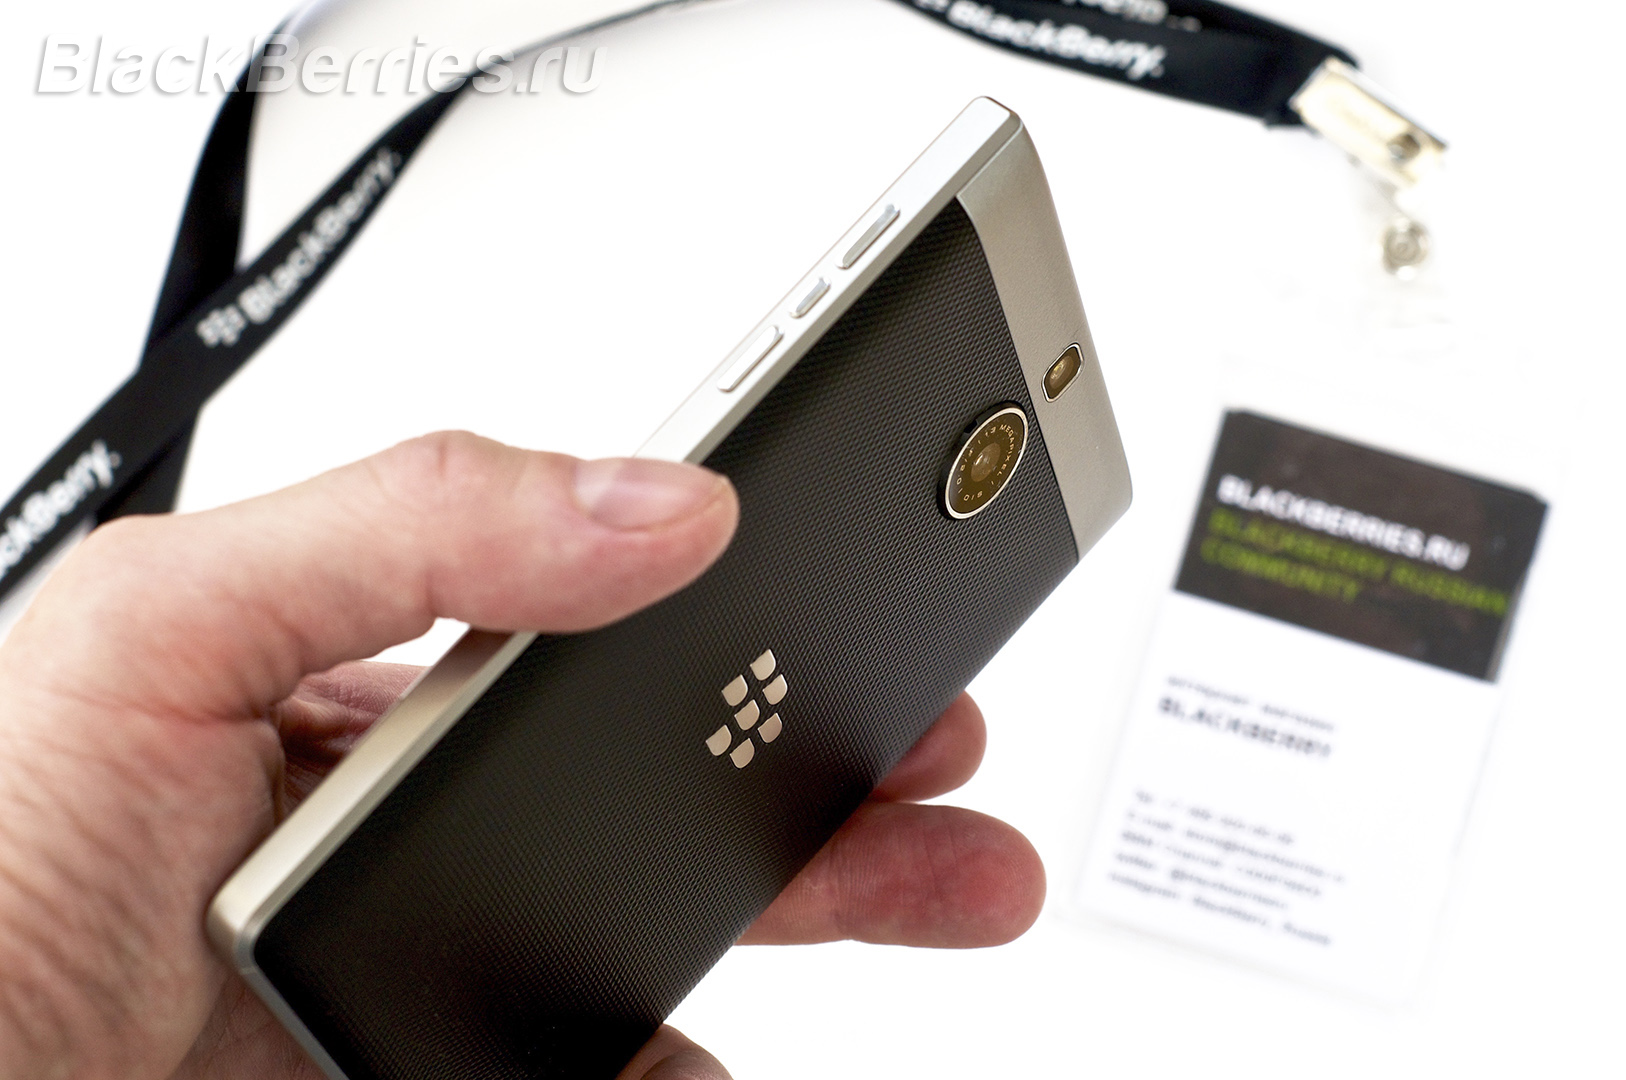 BlackBerry-Passport-Silver-Edition-Review-38